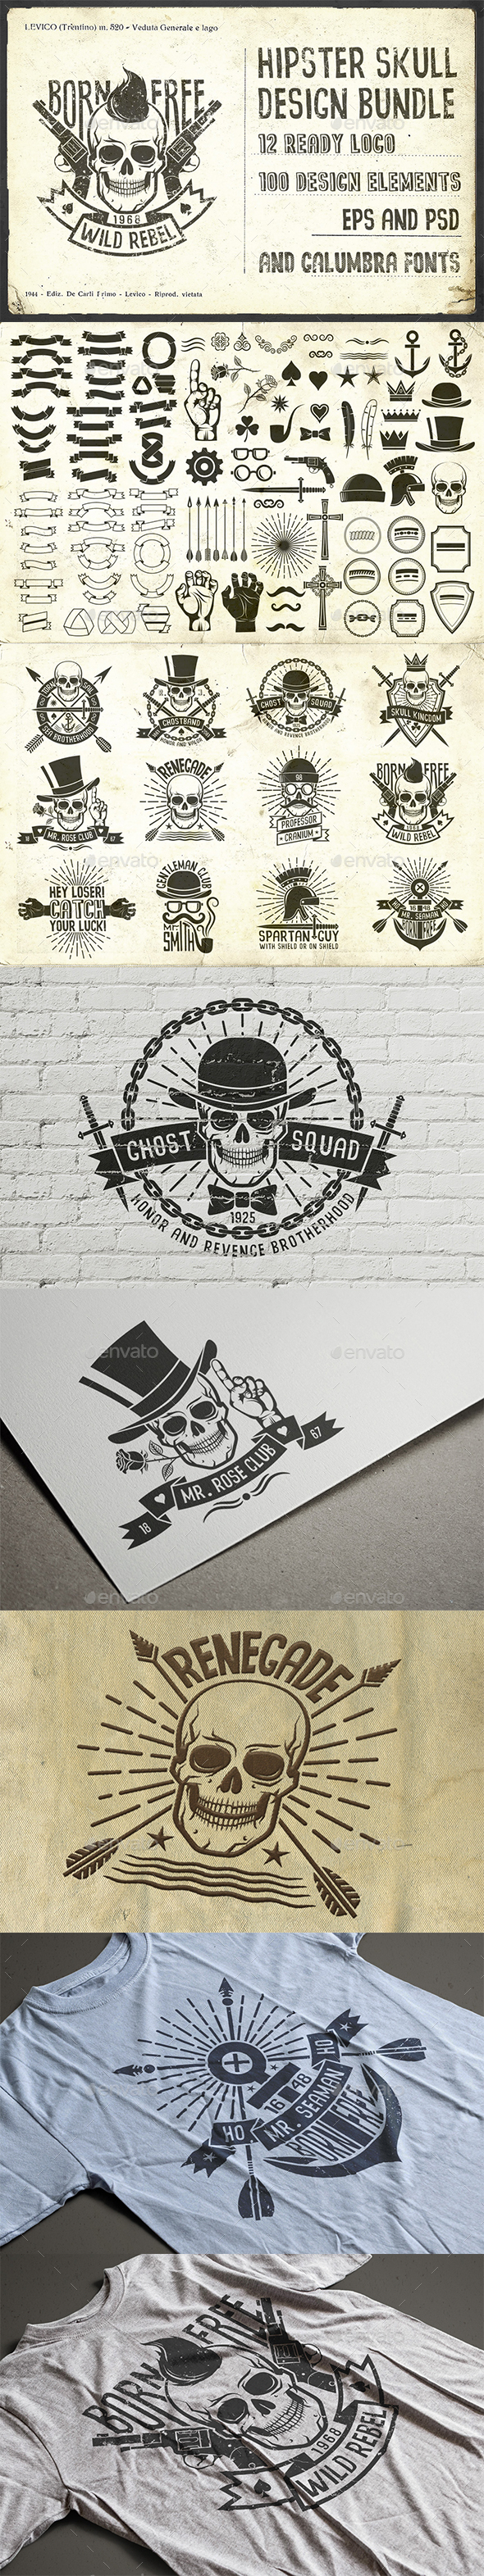 Hipster Skull Design Pack - Tattoos Vectors